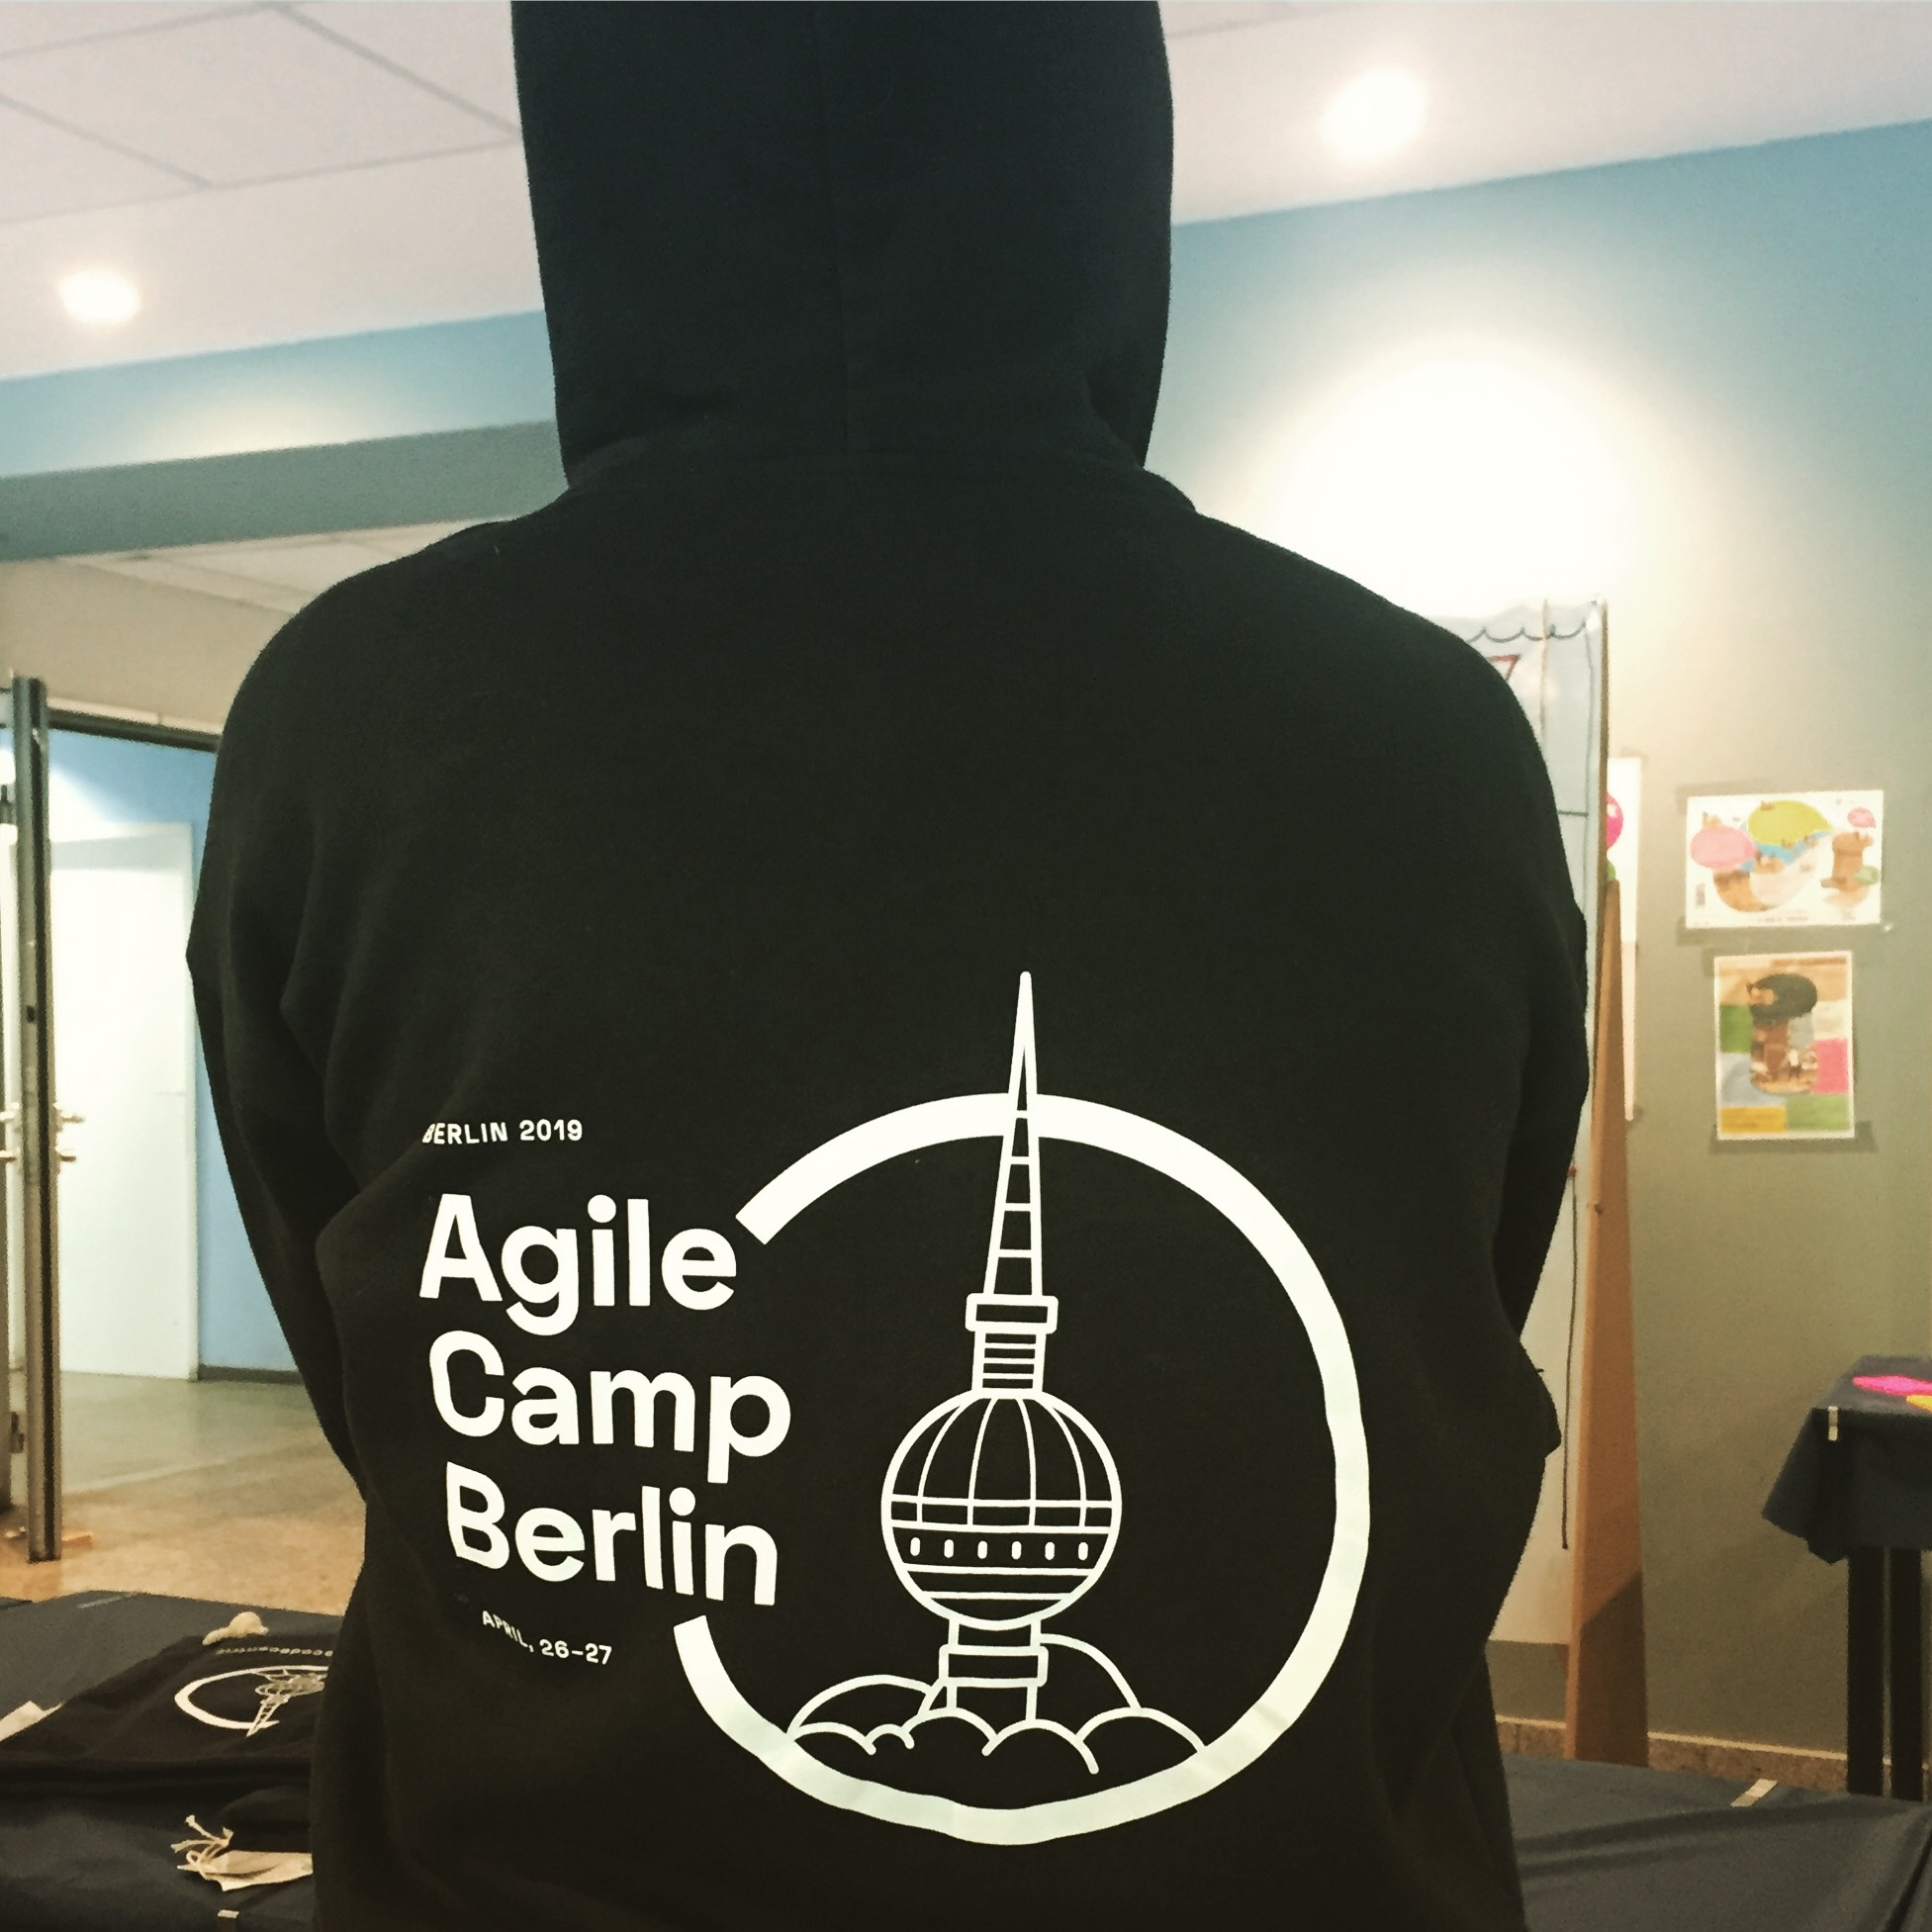 Organisation of the Agile Camp Berlin